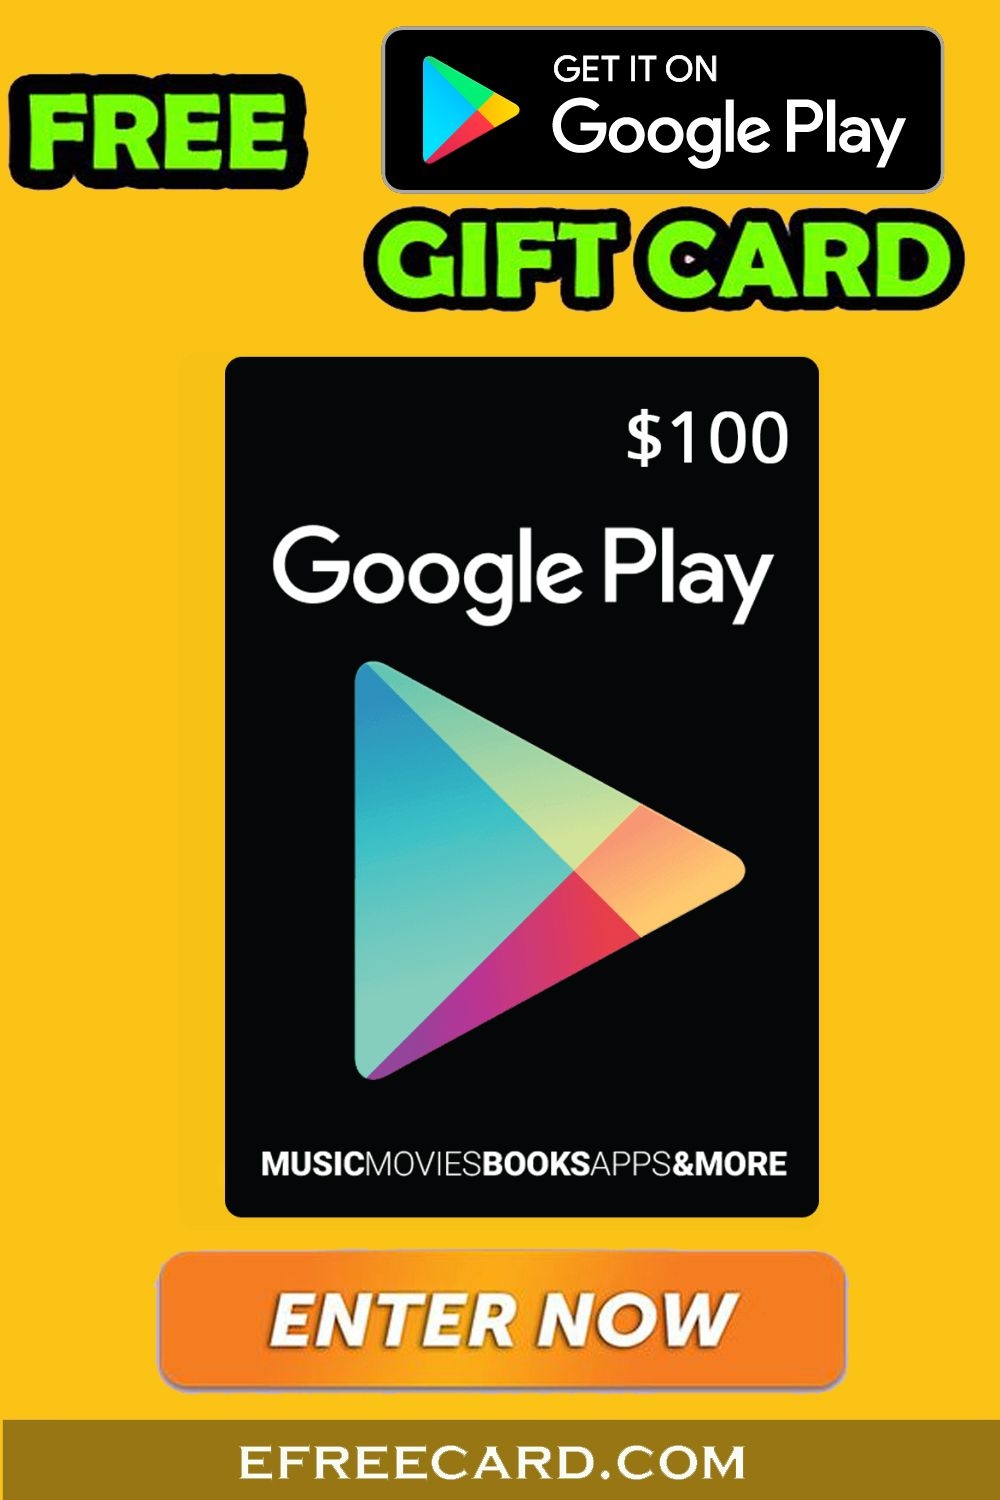 How To Get Redeem Code For Google Playstore 2020 Google Play Gift Card Free Gift Card Generator Gift Card Promotions